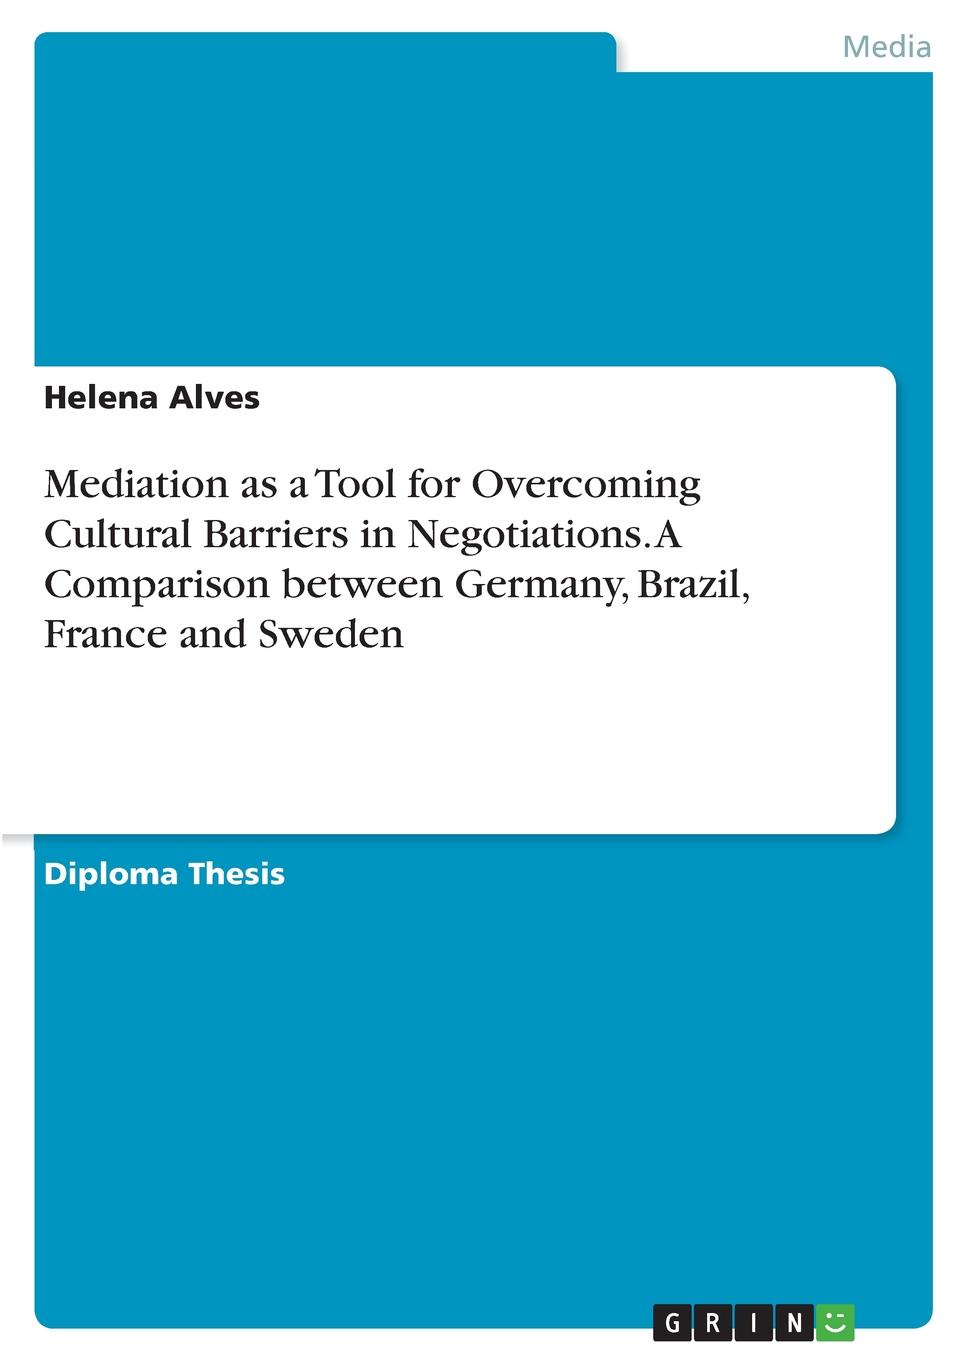 Helena Alves Mediation as a Tool for Overcoming Cultural Barriers in Negotiations. A Comparison between Germany, Brazil, France and Sweden lennart reinhold job motivation and culture a cross cultural comparison of germany and the united states